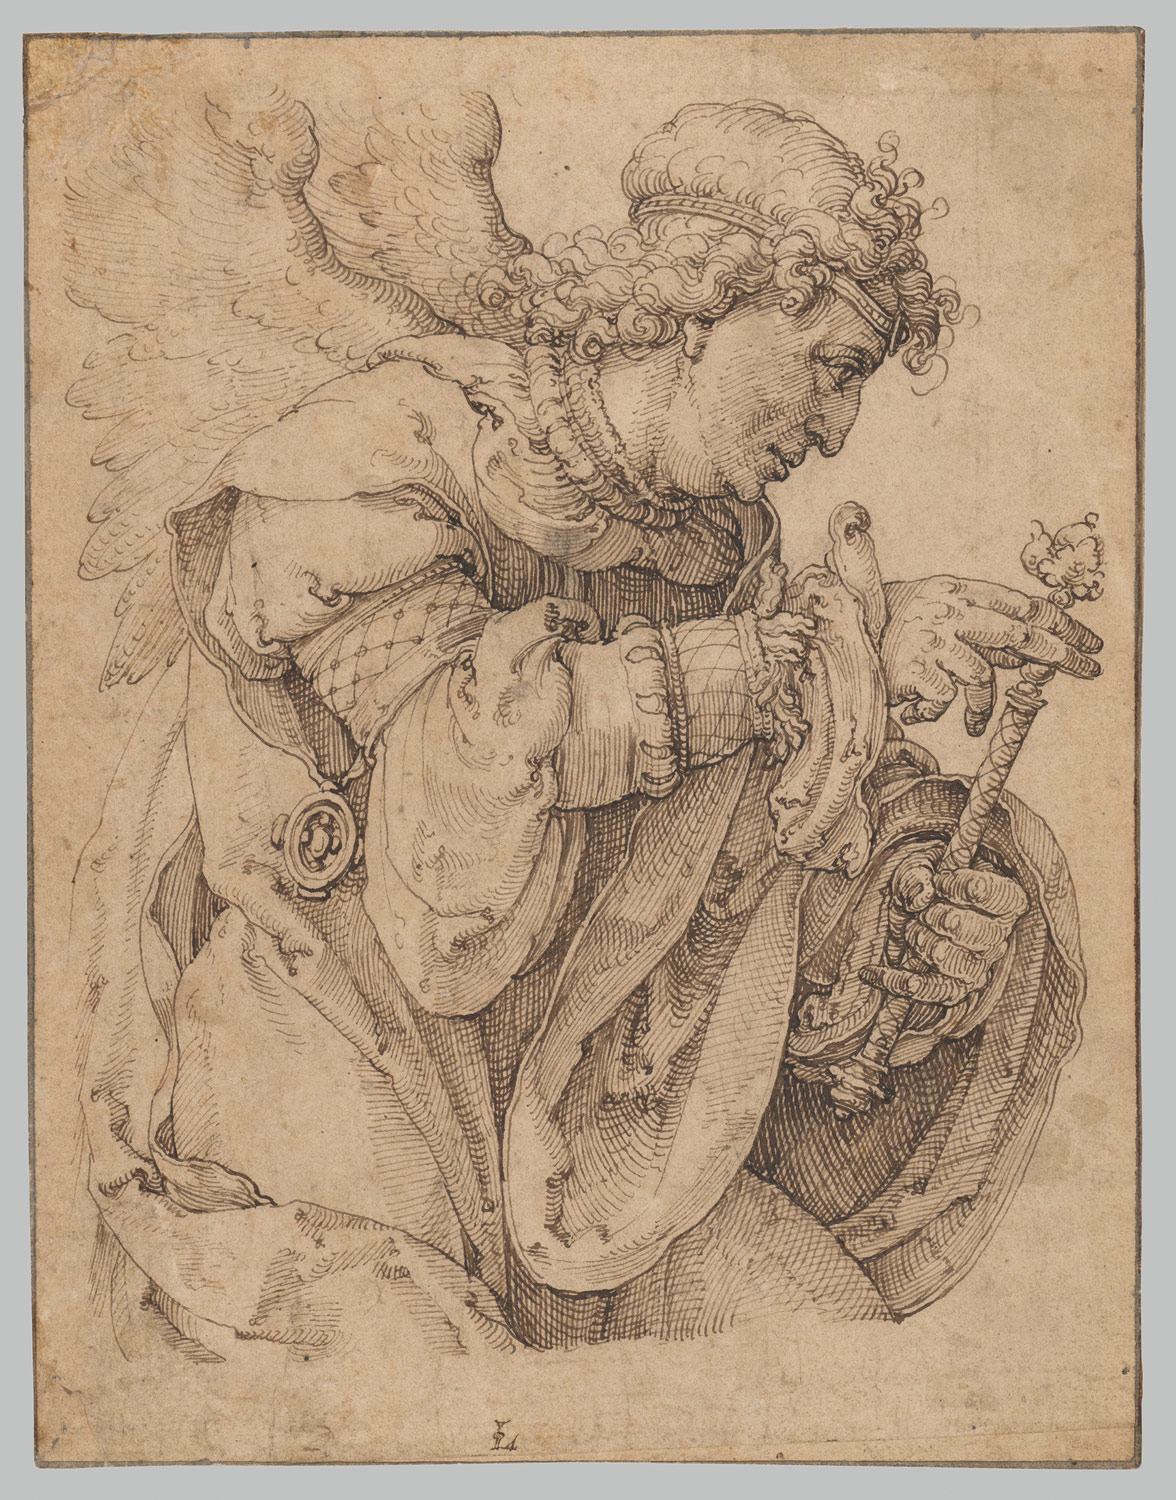 The Archangel Gabriel announcing the birth of Christ – Announcing a Birth